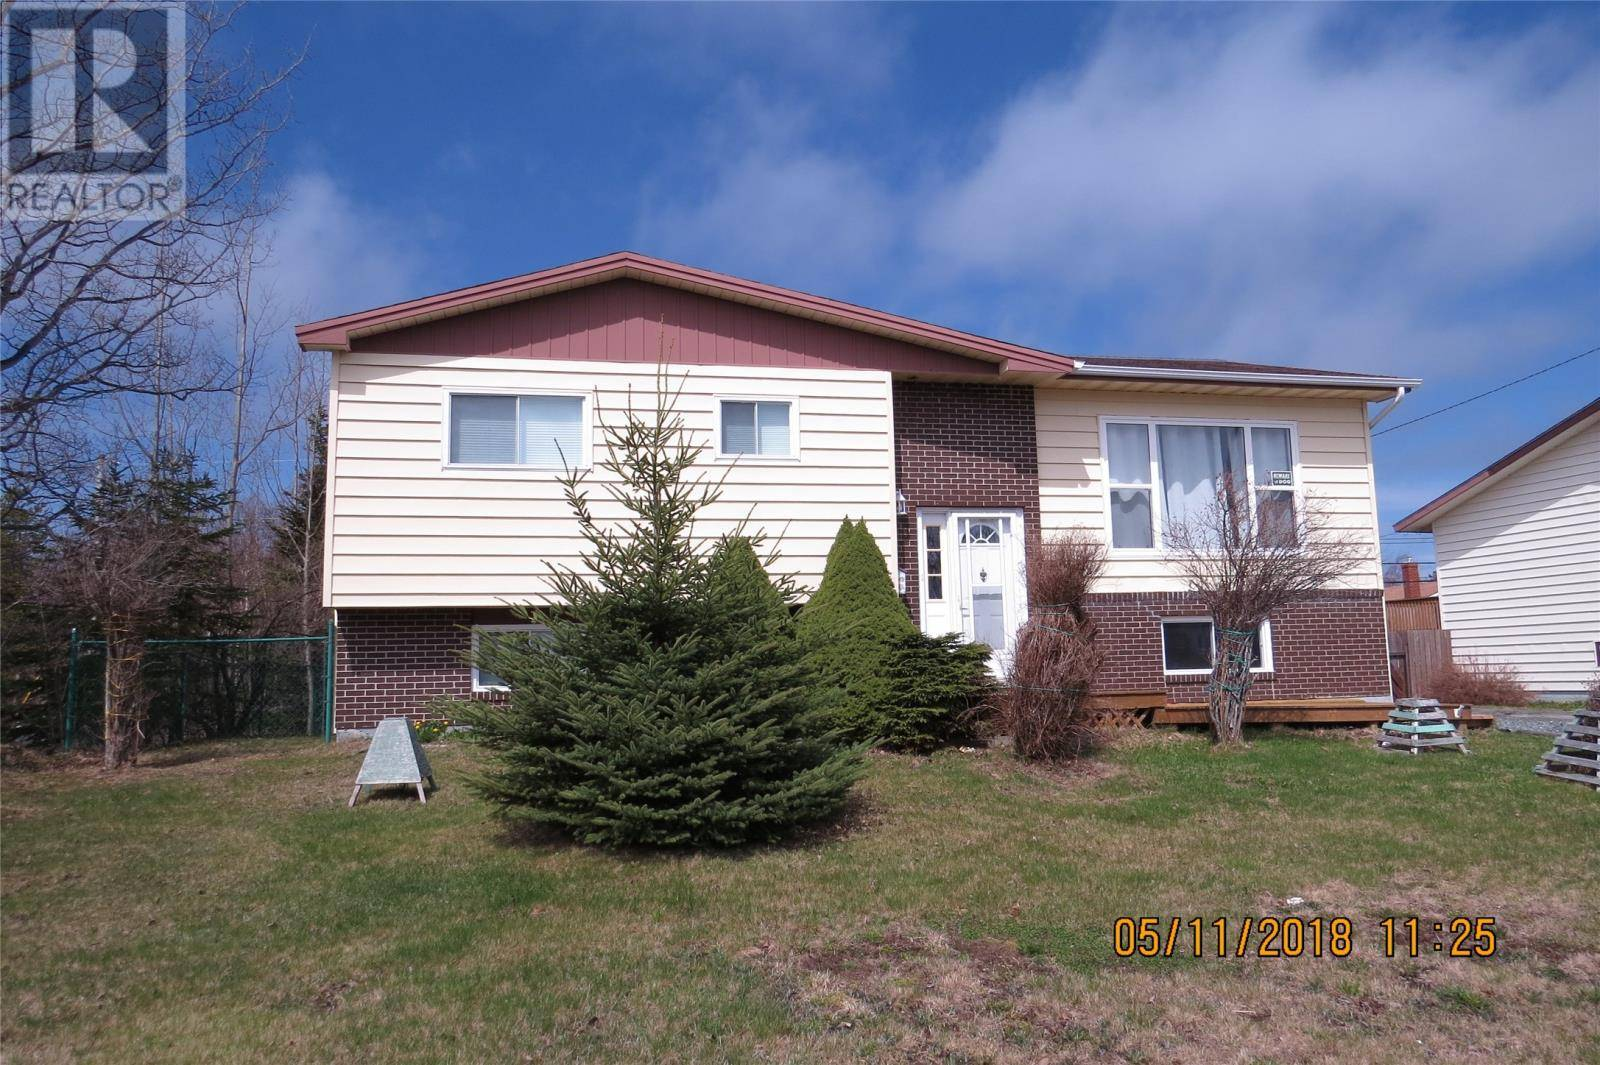 House for sale at 48 Morgan Dr Gander Newfoundland - MLS: 1174753